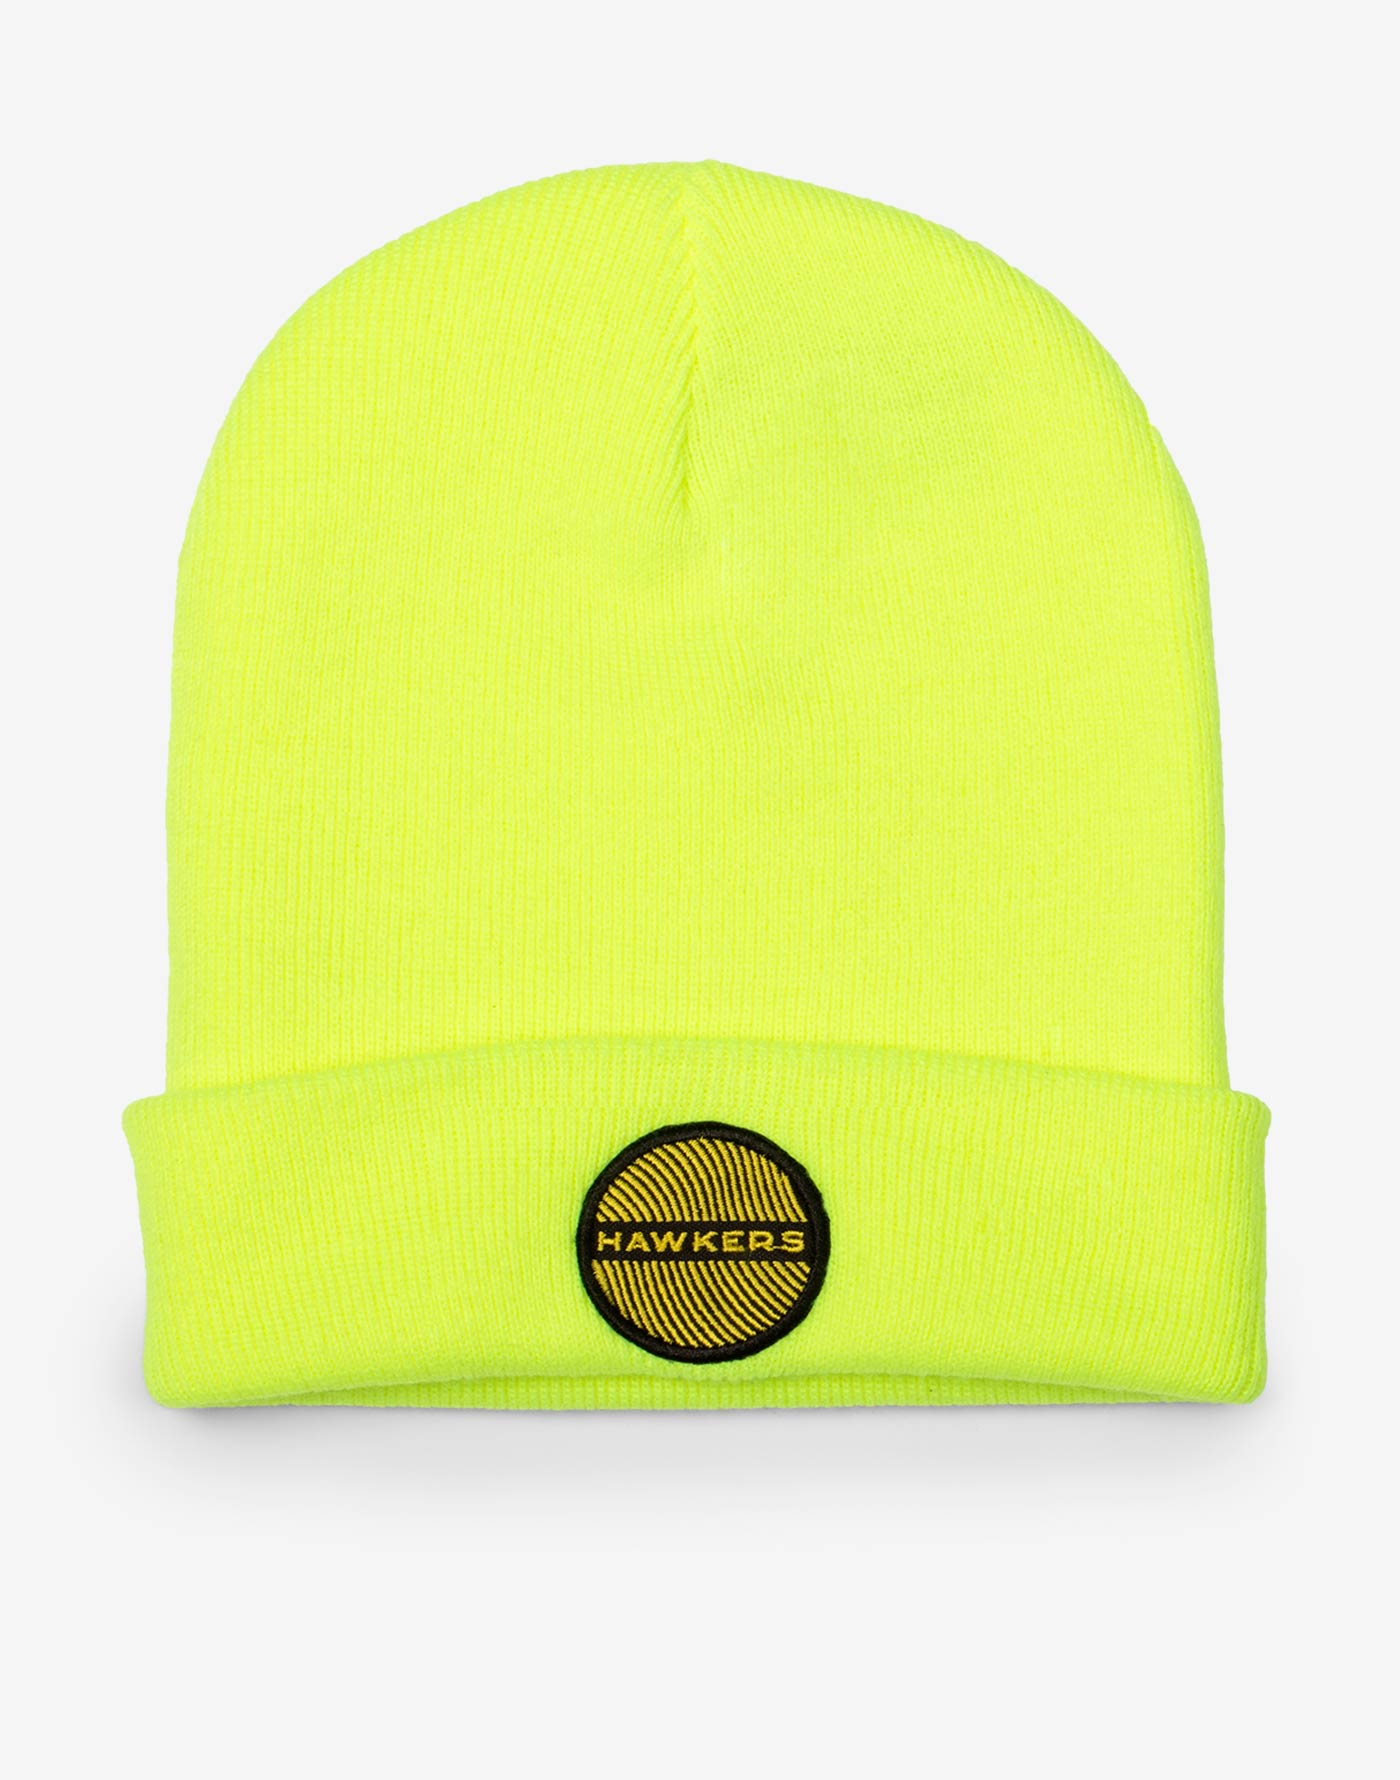 Neon Yellow Wool Beanie